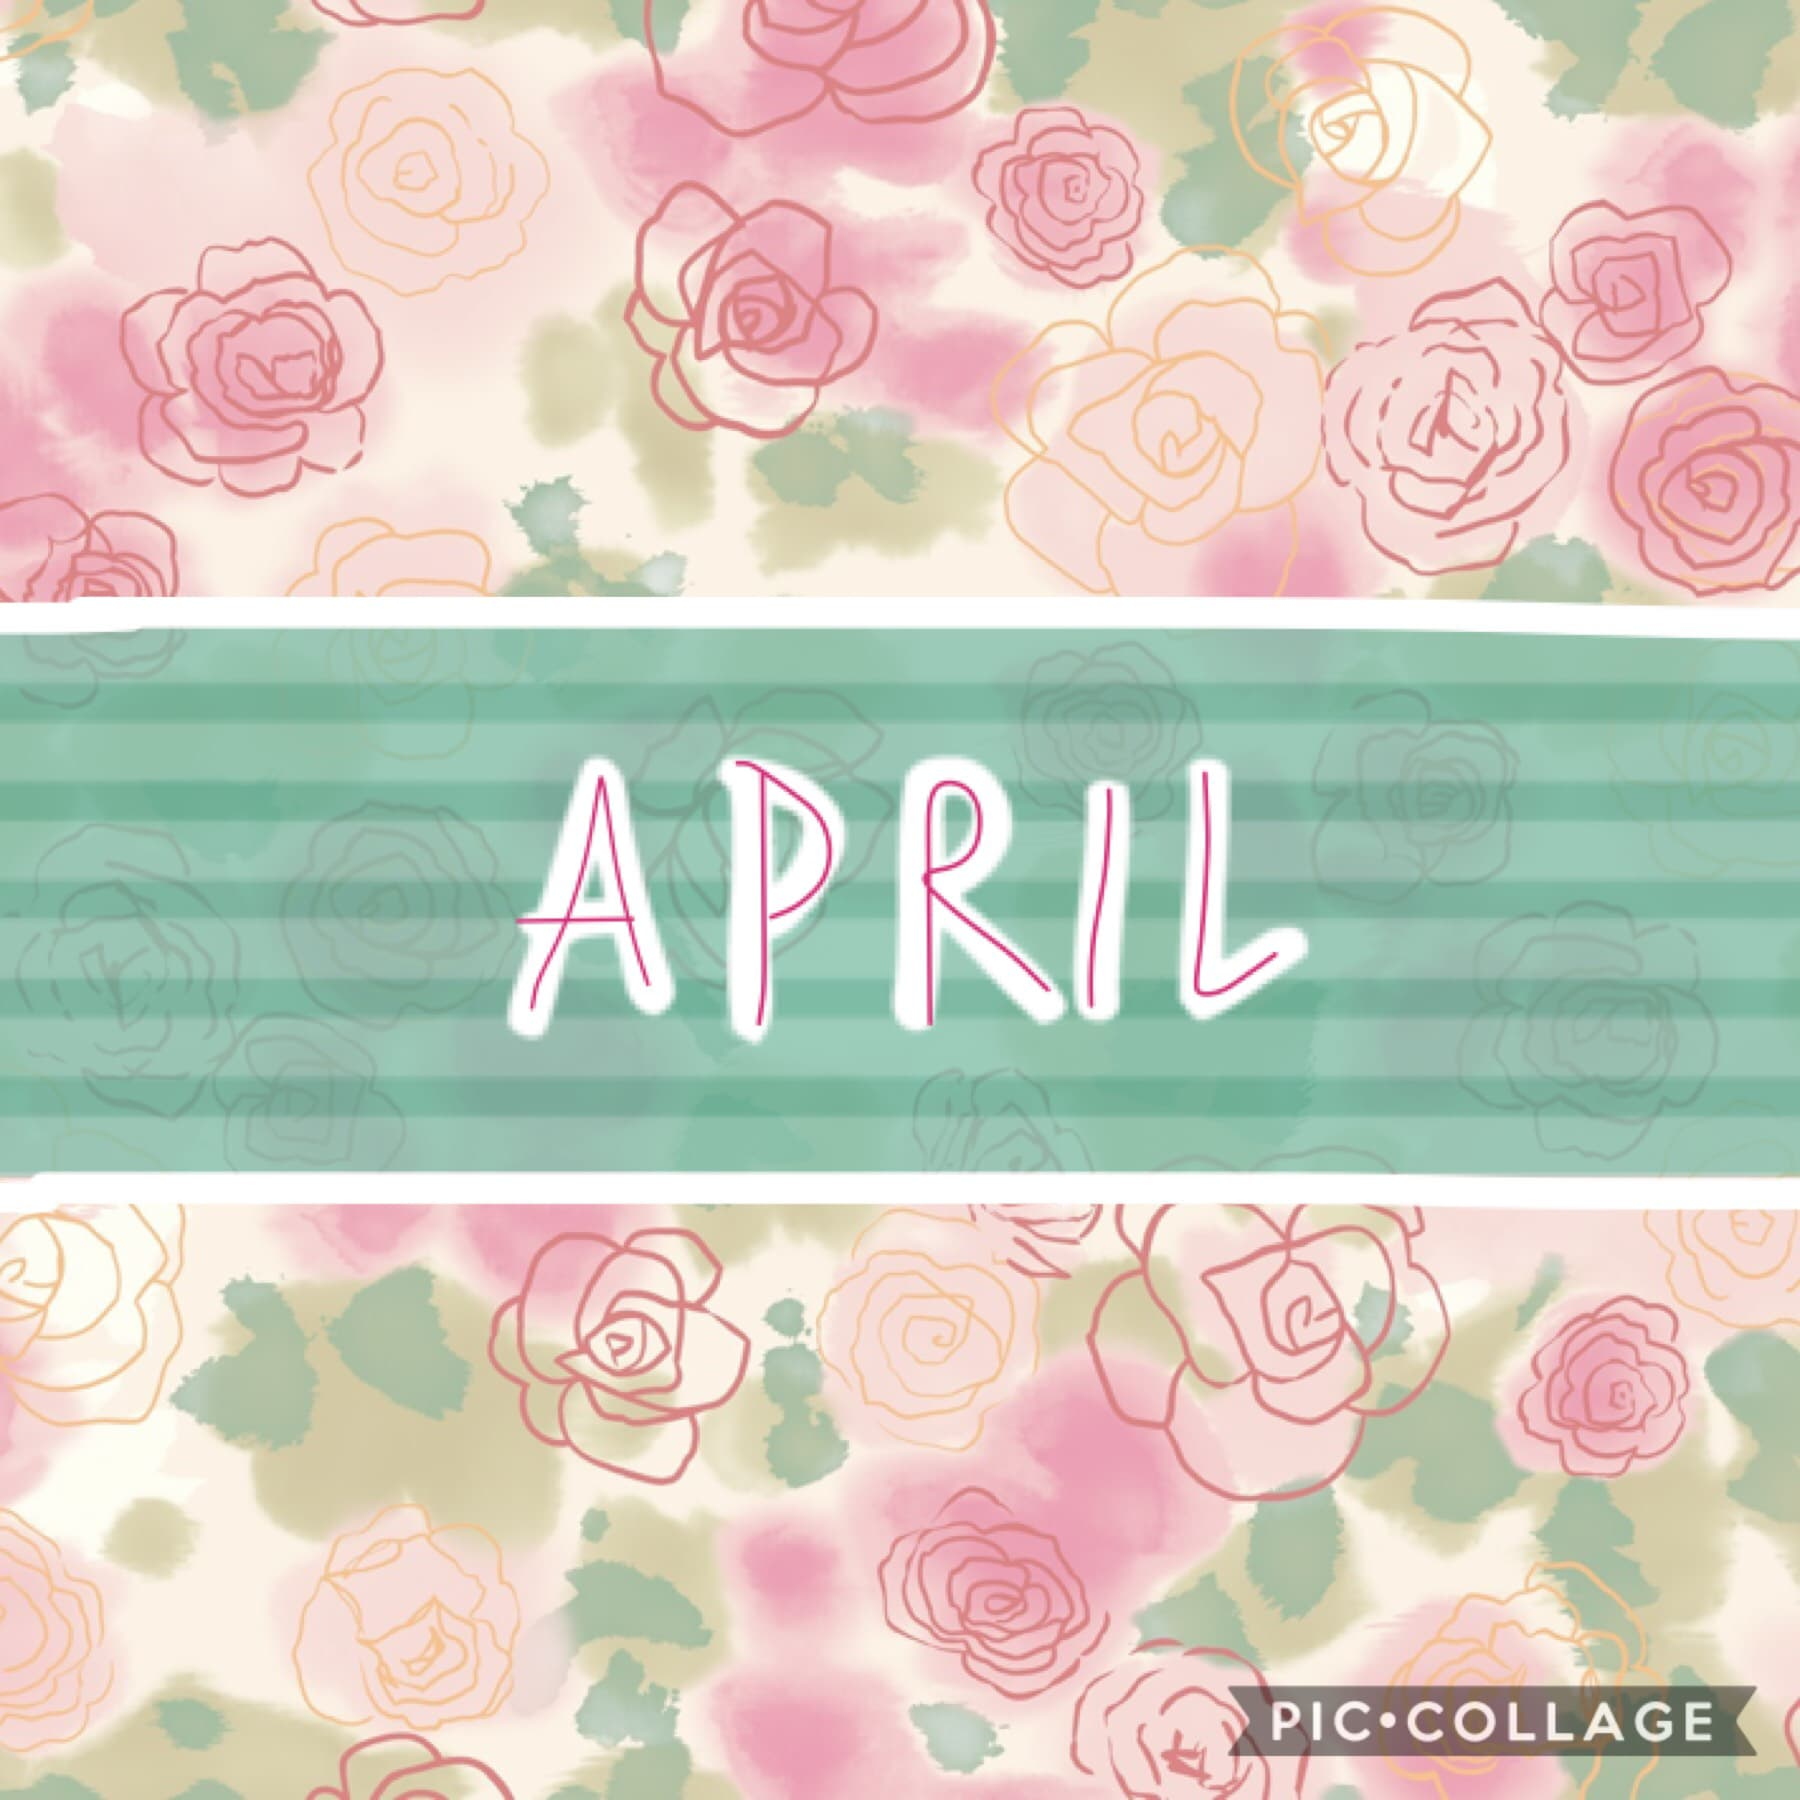 This is pretty simple, but happy April 1st! 😋 🌧 🌱 🌸 🗓 And Happy April Fools' Day! 🤪 🔫 🧠 💀 Q: Did you guys pull any pranks? 😂 A: I always tell myself I'll be more prepared the next year, but again I wasn't. 😶 I didn't do anything irl.